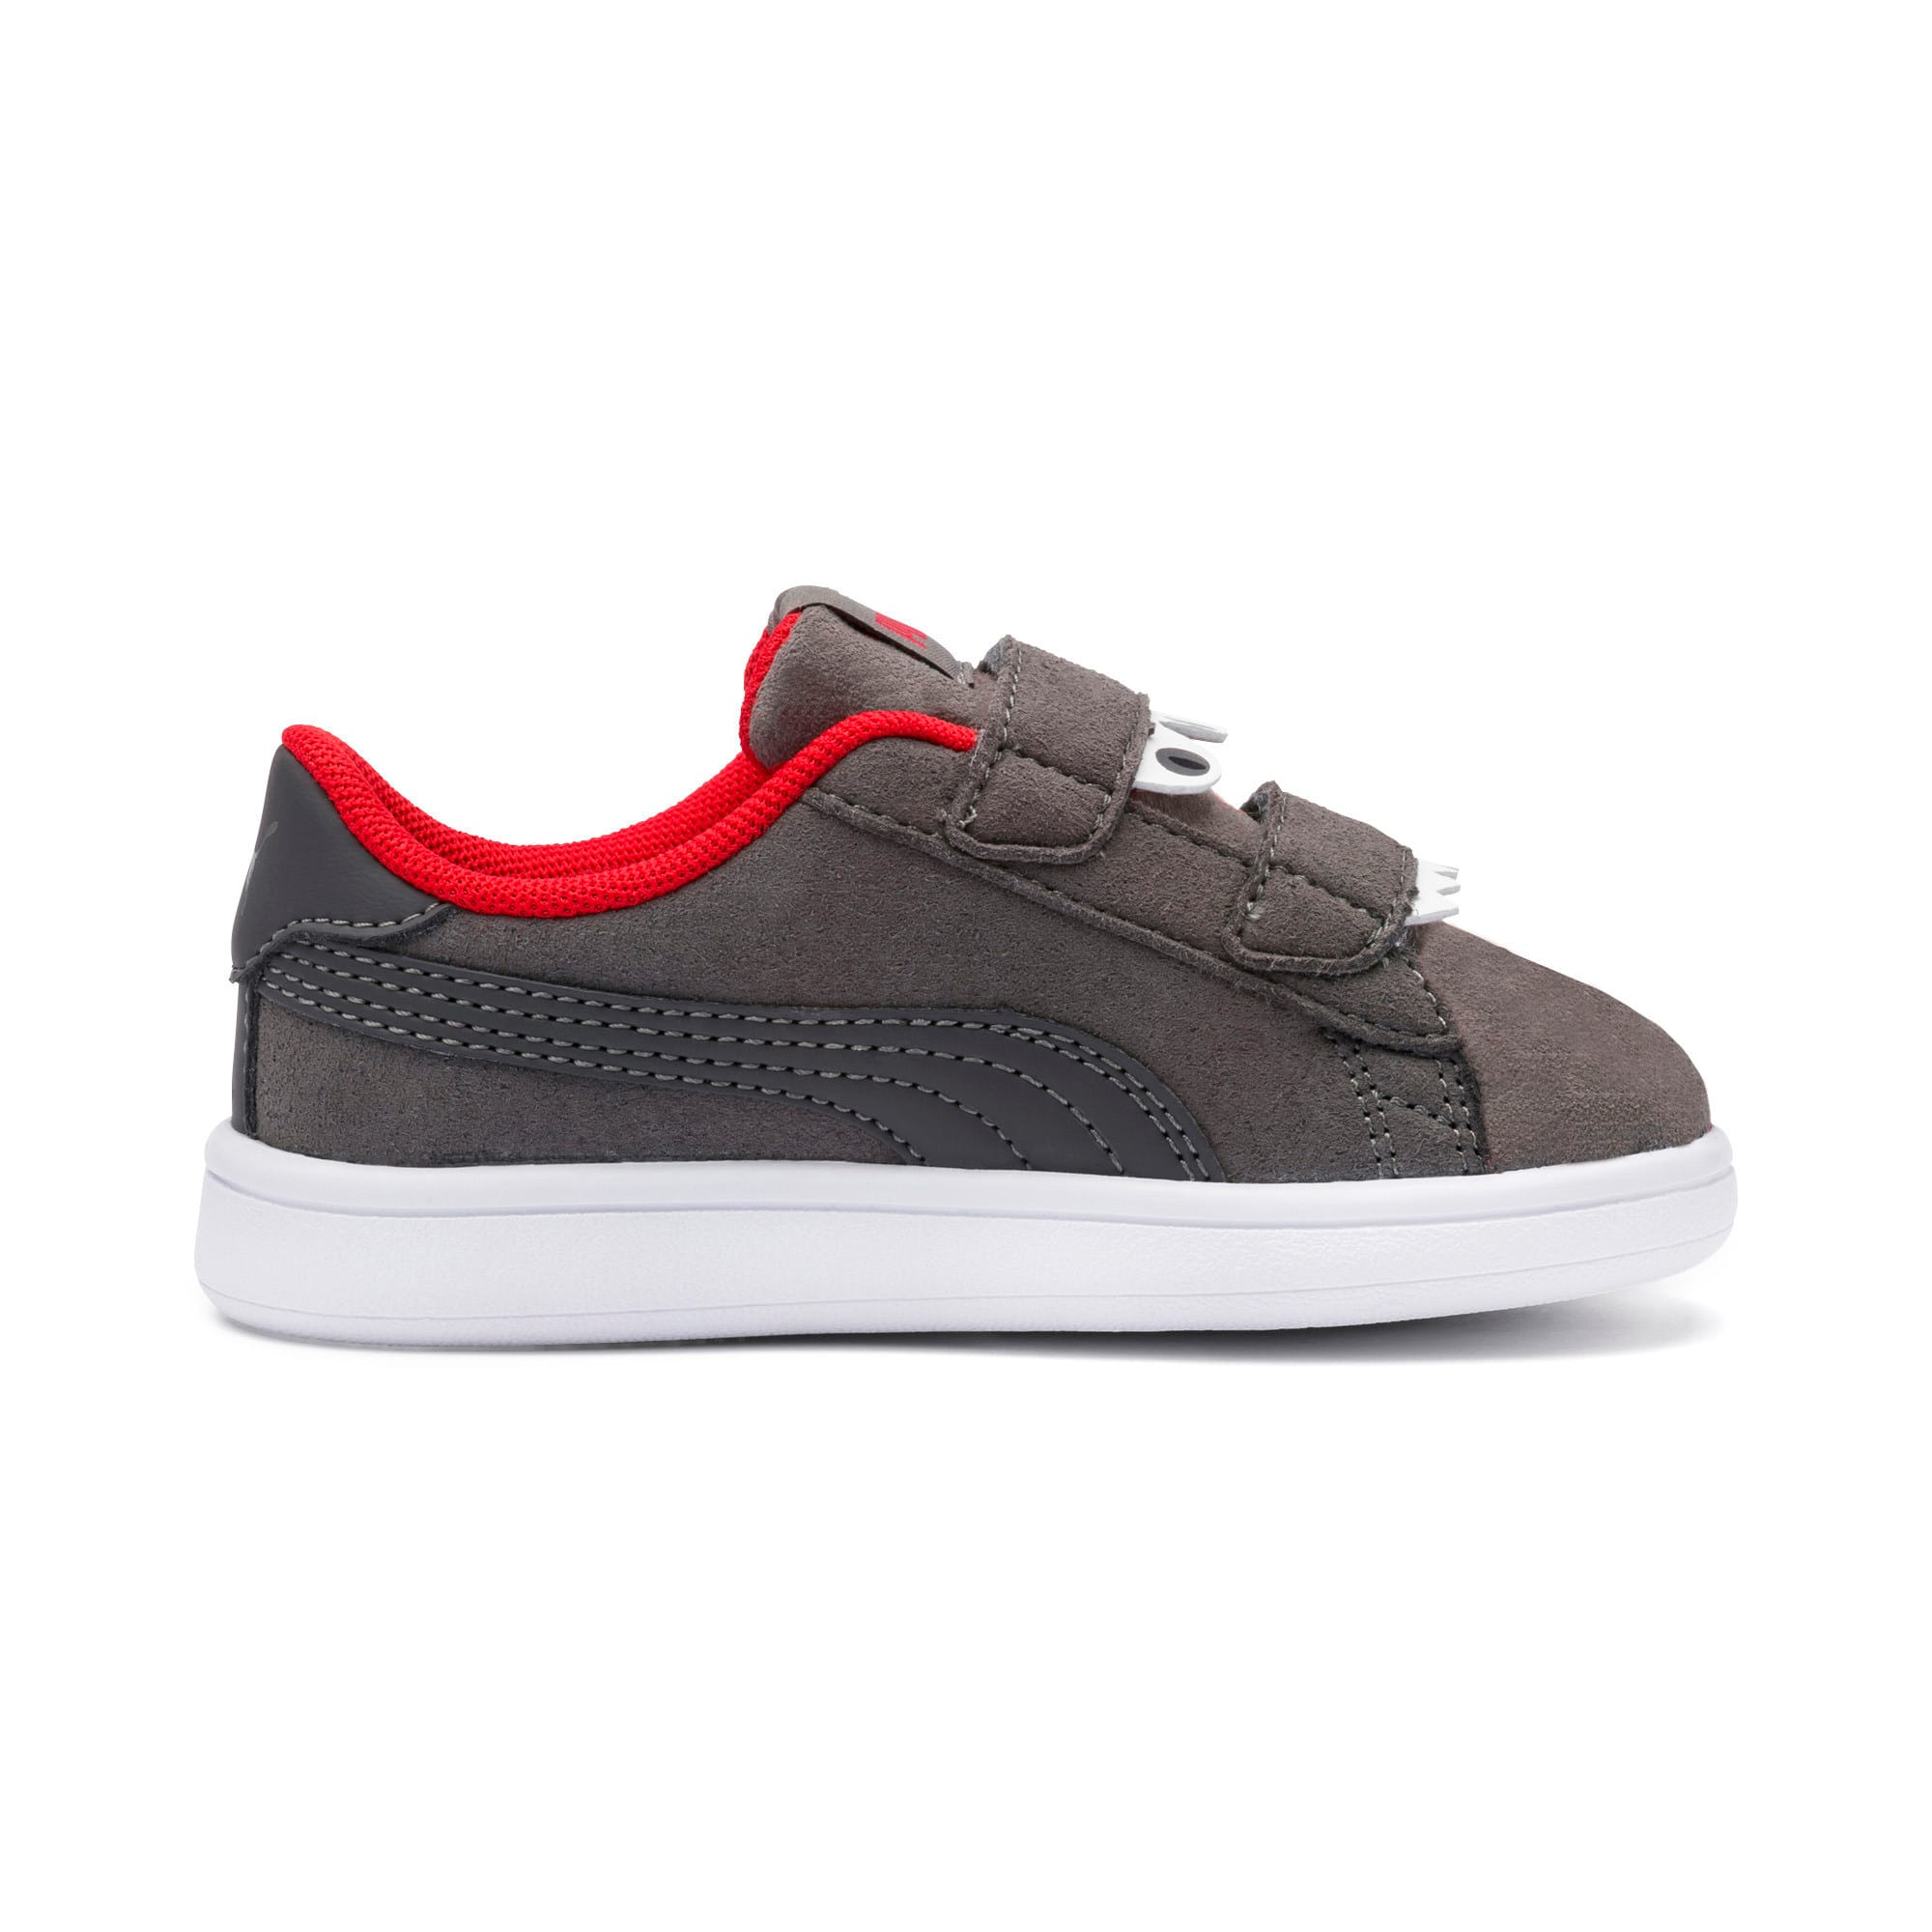 Thumbnail 5 of PUMA Smash v2 Monster Babies' Trainers, Asphalt-C. Gray-Red-White, medium